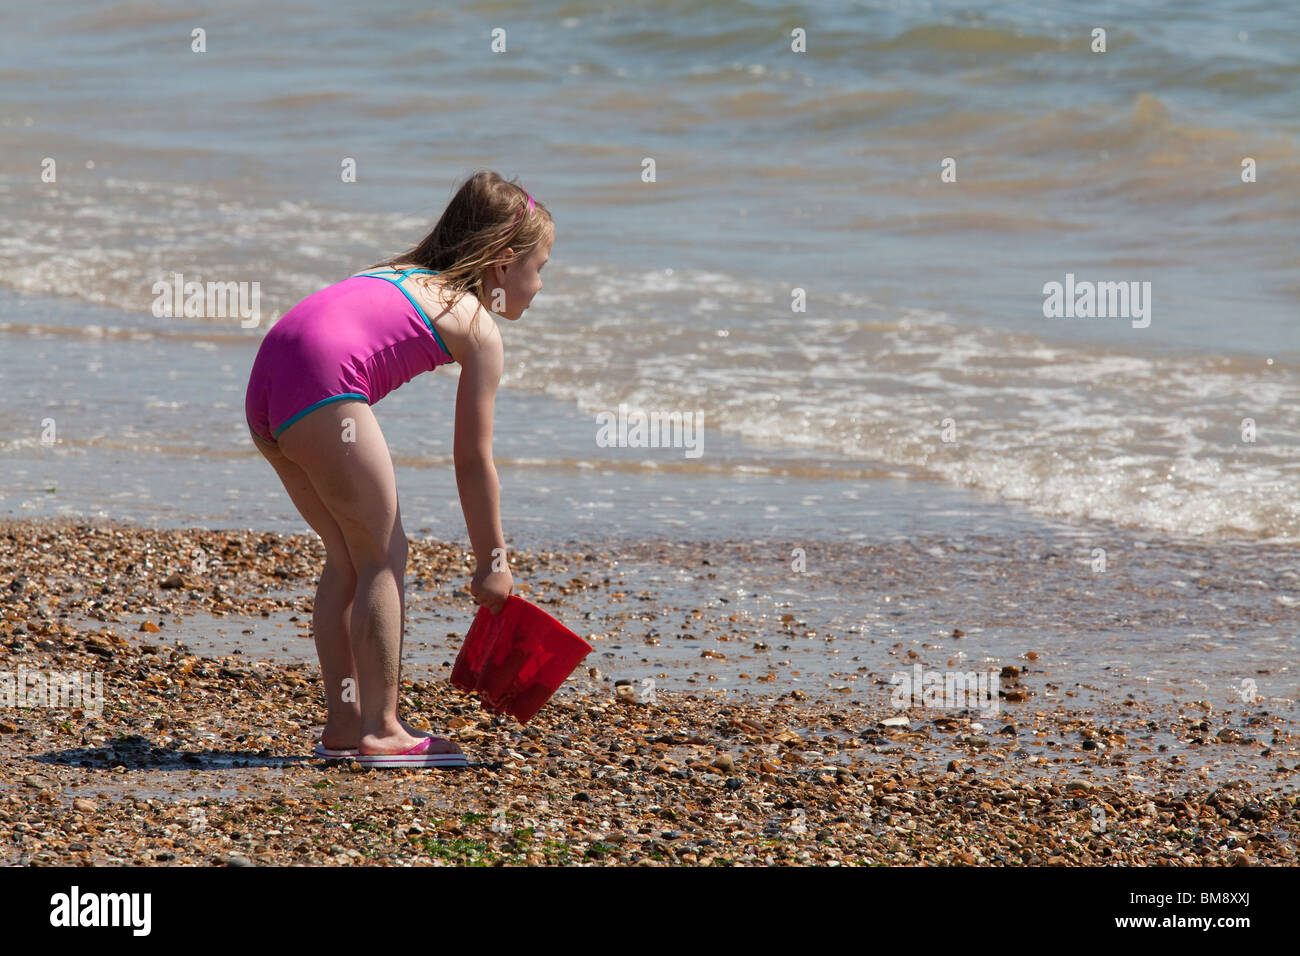 young girl in swimsuit with bucket on beach at edge of sea filling bucket - Stock Image